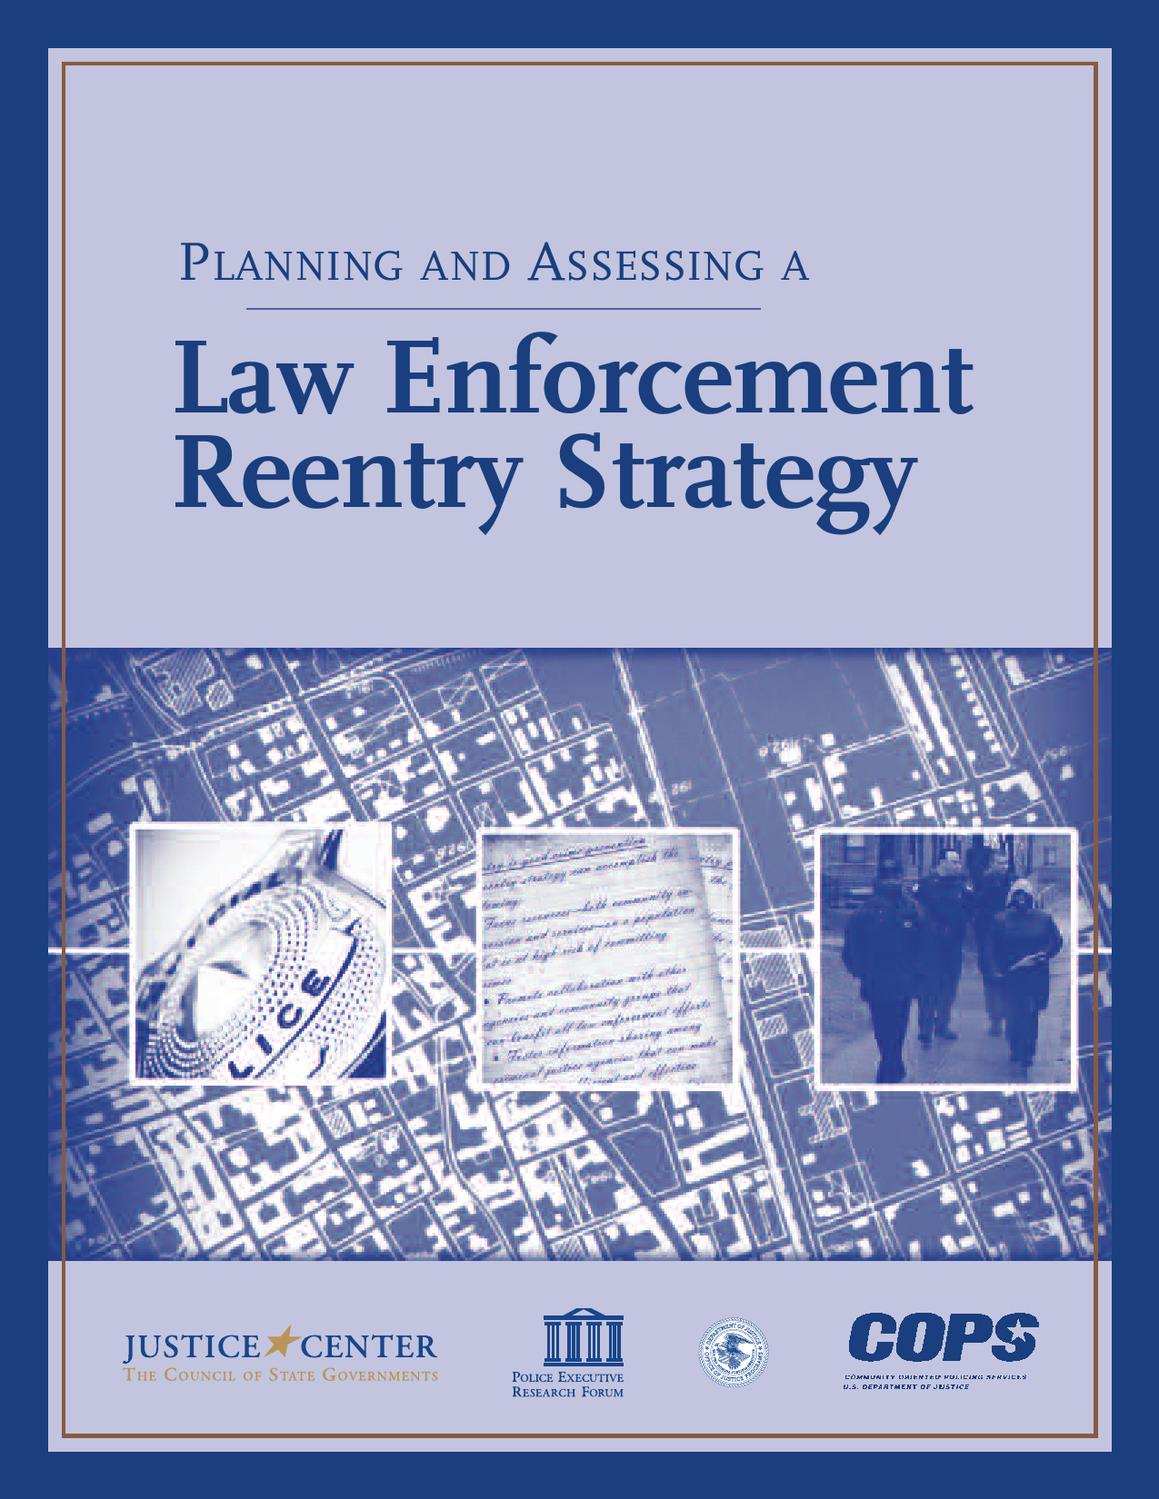 le_reentry_strategy-1 by CSG Justice Center - issuu